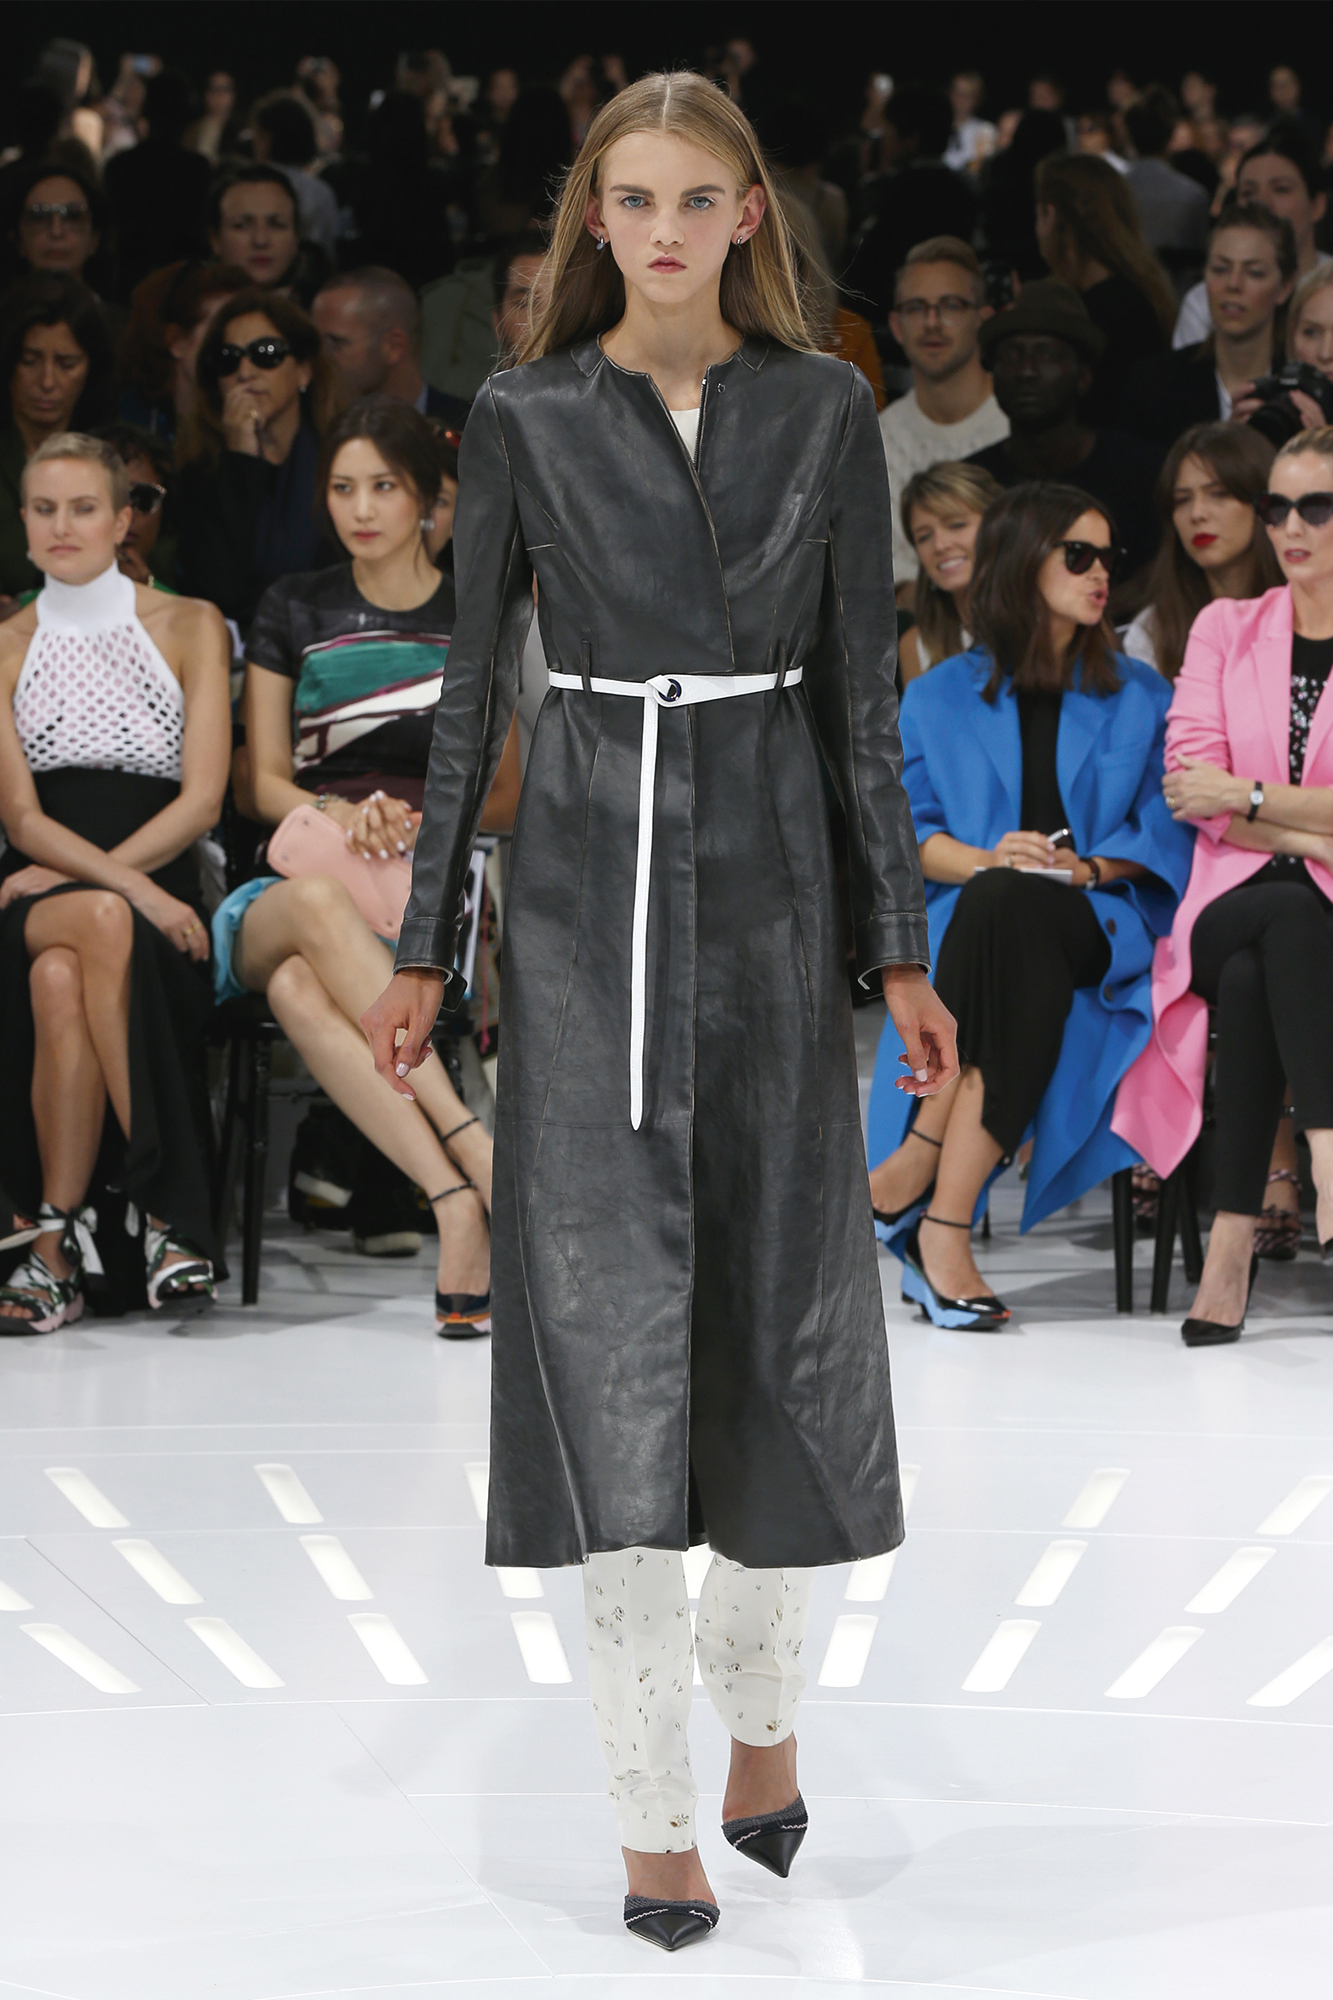 Christian Dior Haute Couture Spring-Summer Ready To Wear Dresses & Accessories Collection 2015-16 (13)